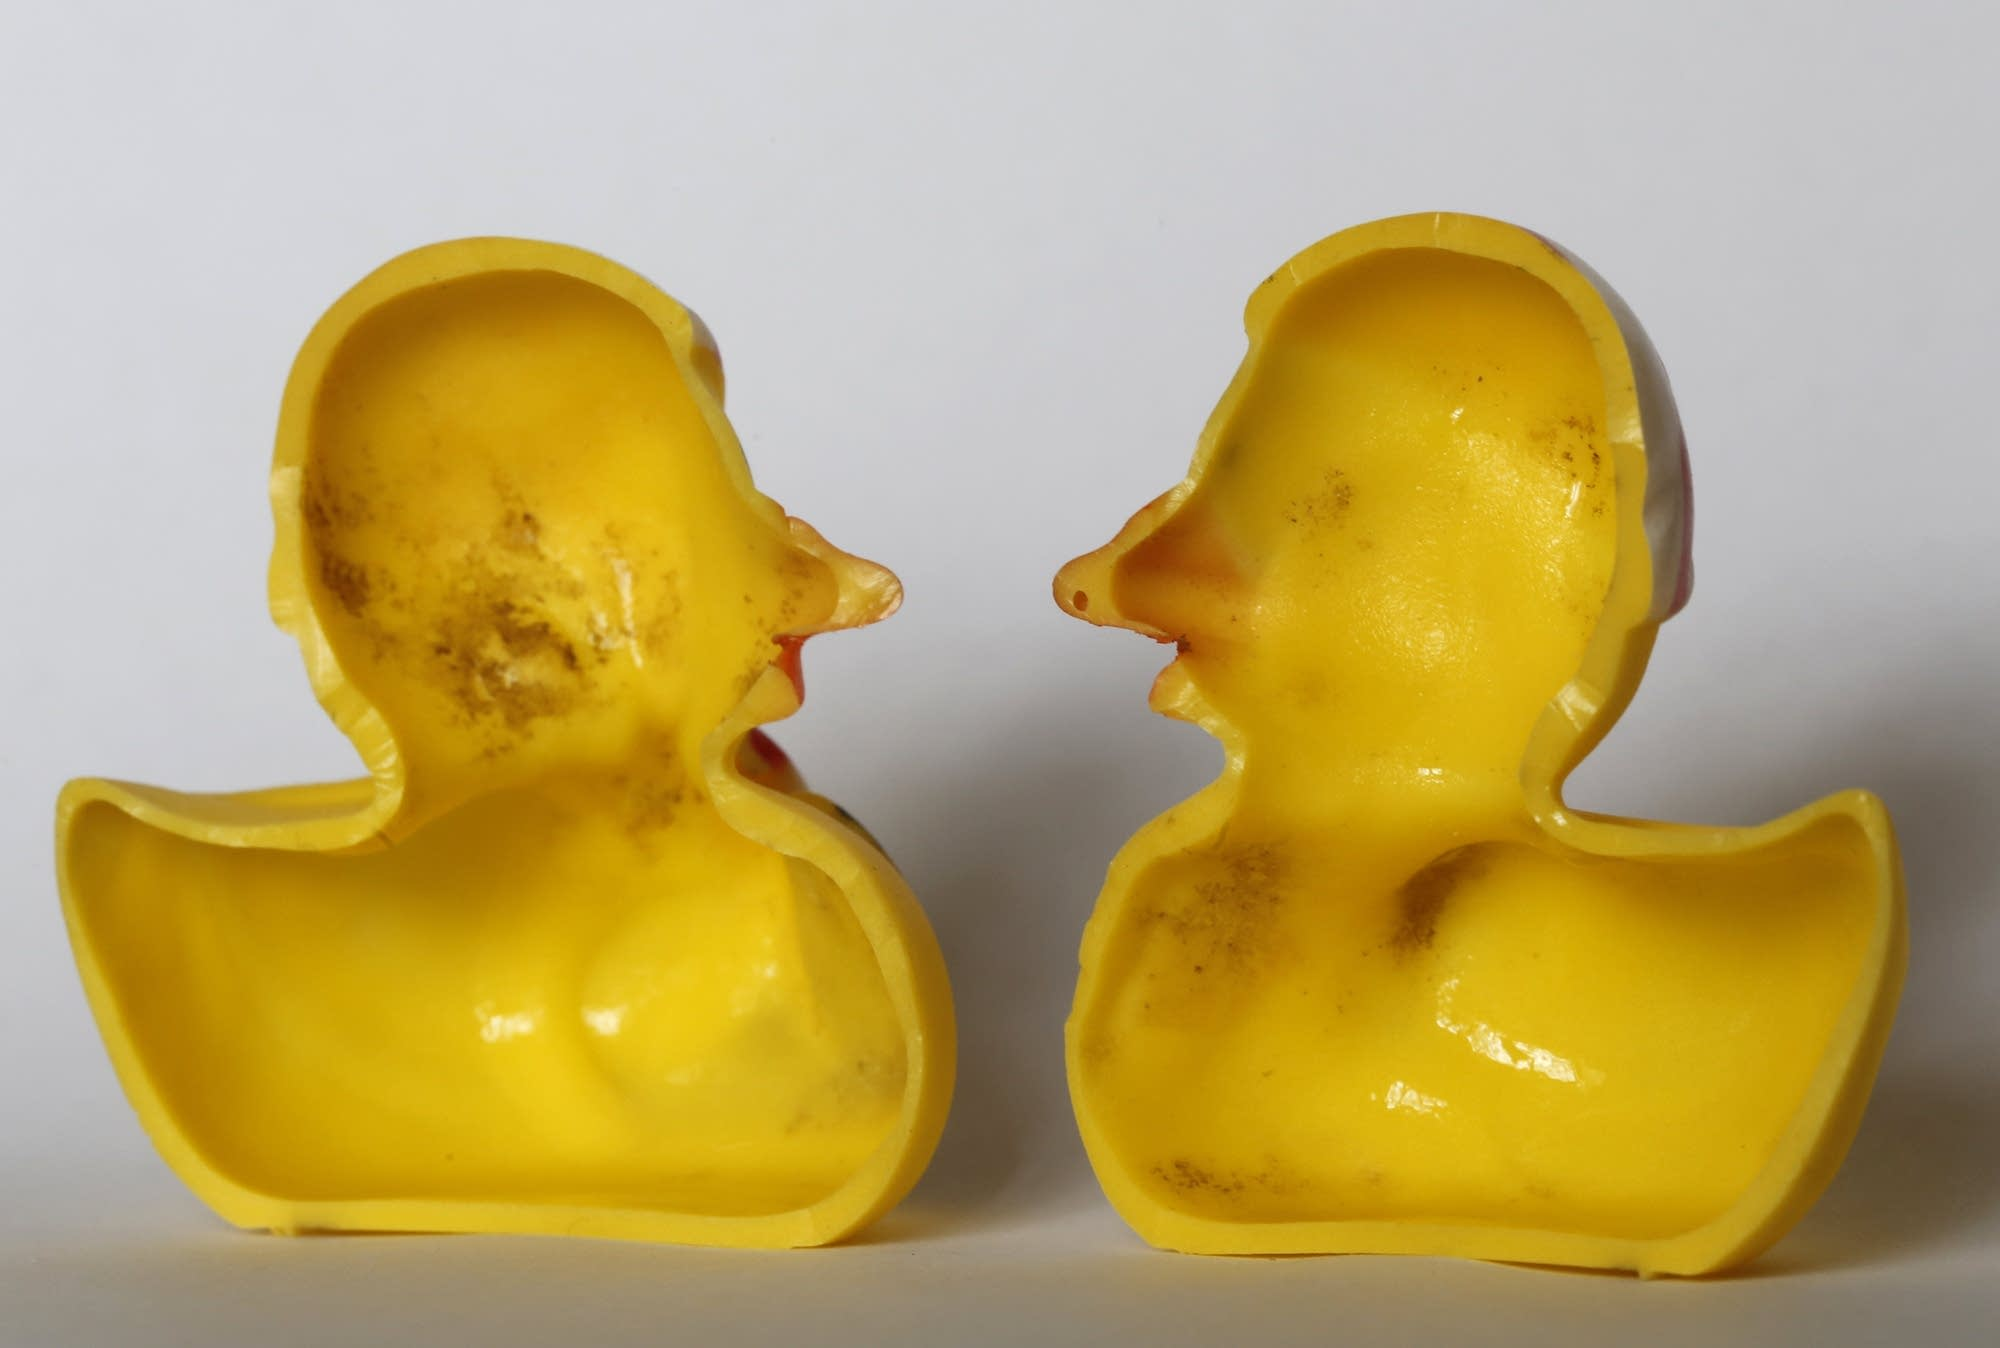 Majority of rubber duckies house 'potentially pathogenic bacteria,' study says